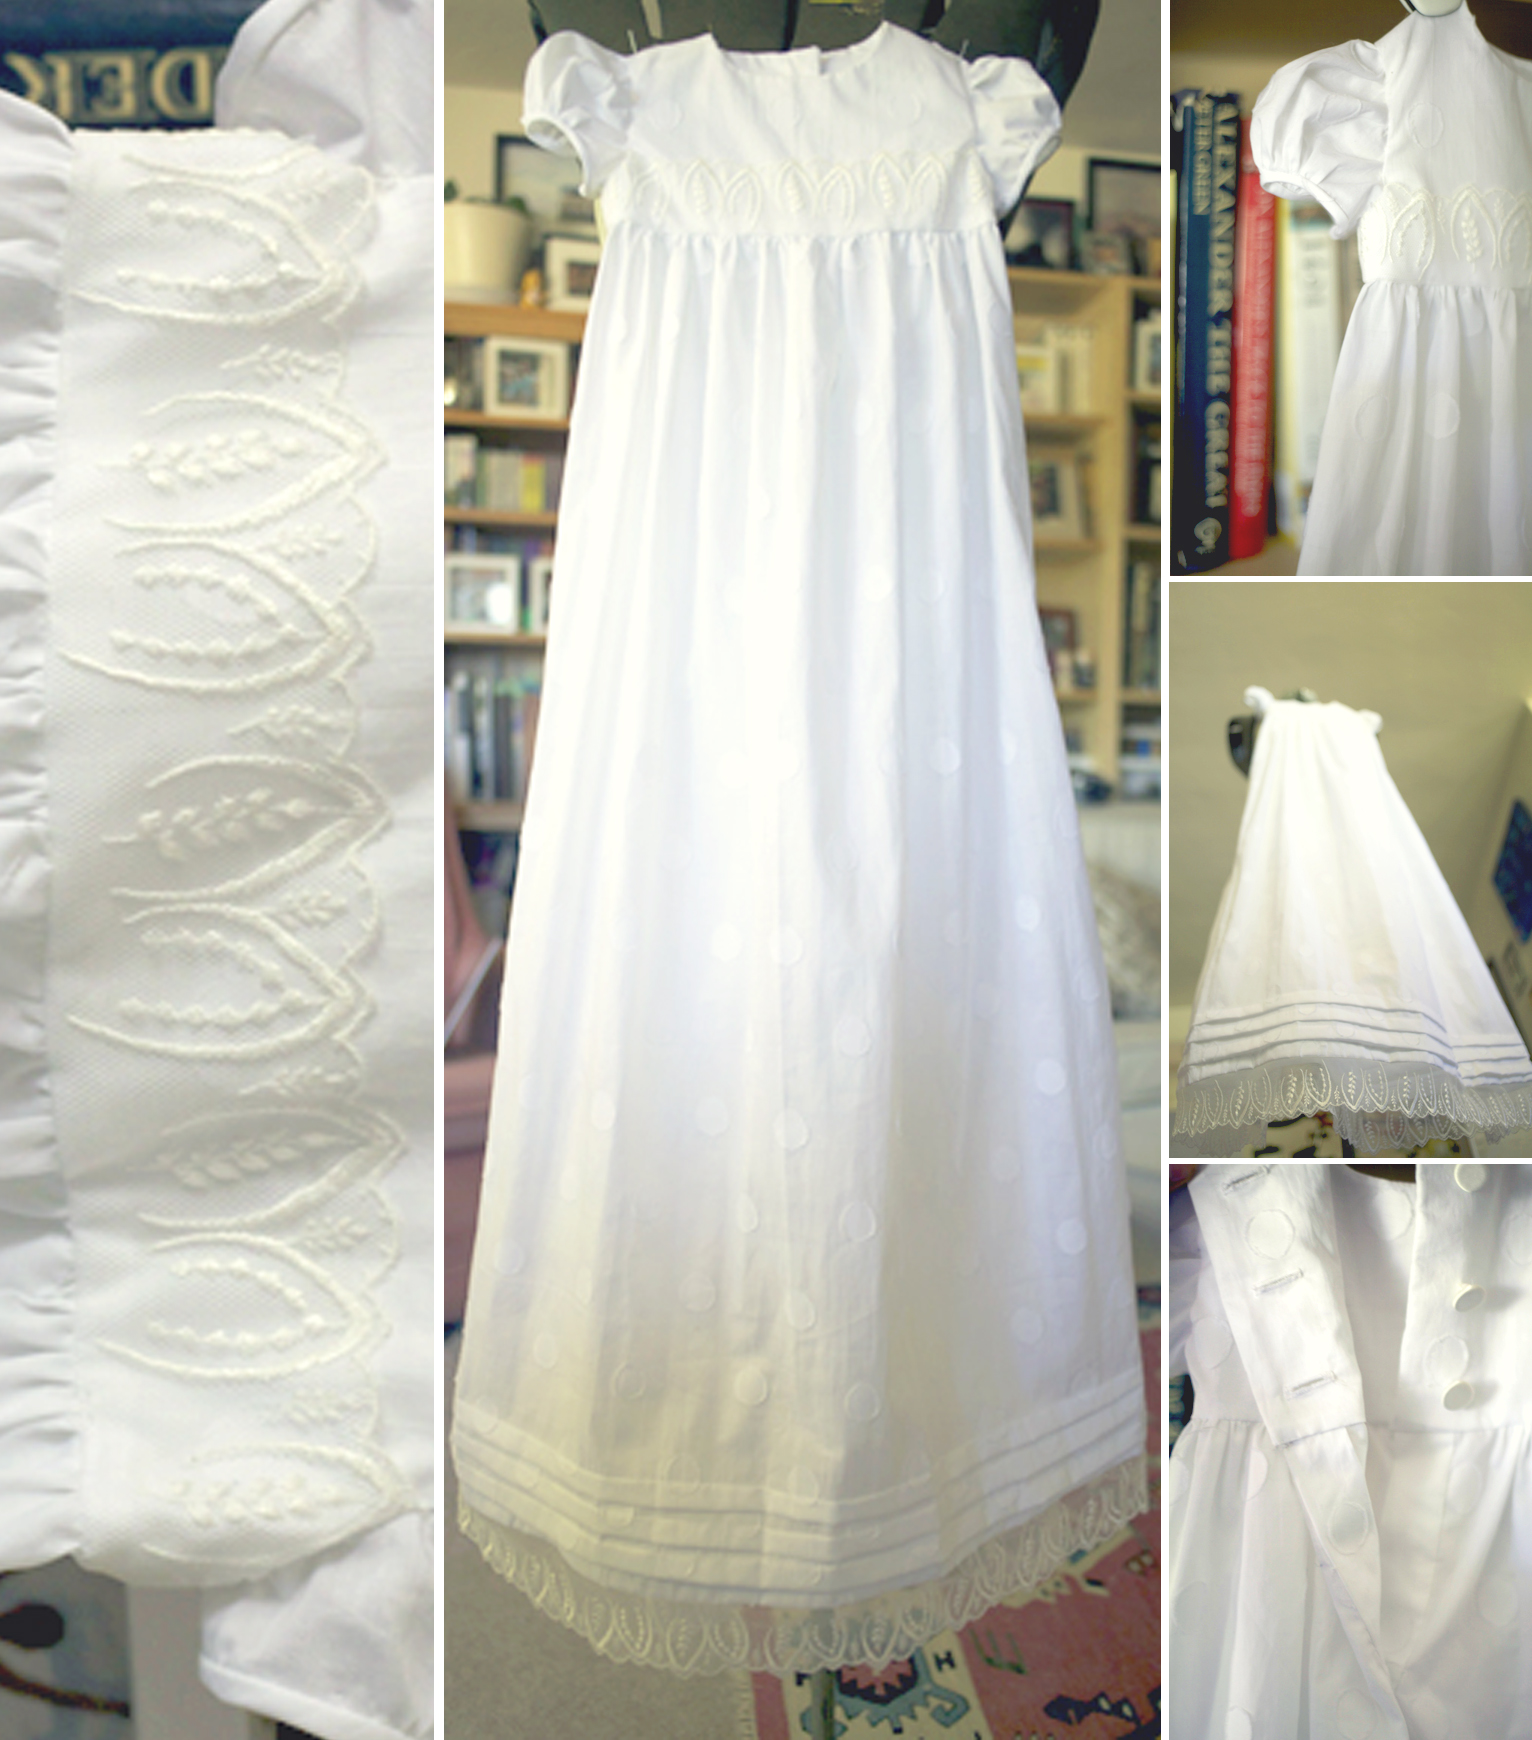 The Angelic Gown and the Sewing for Children Contest – Sew Well